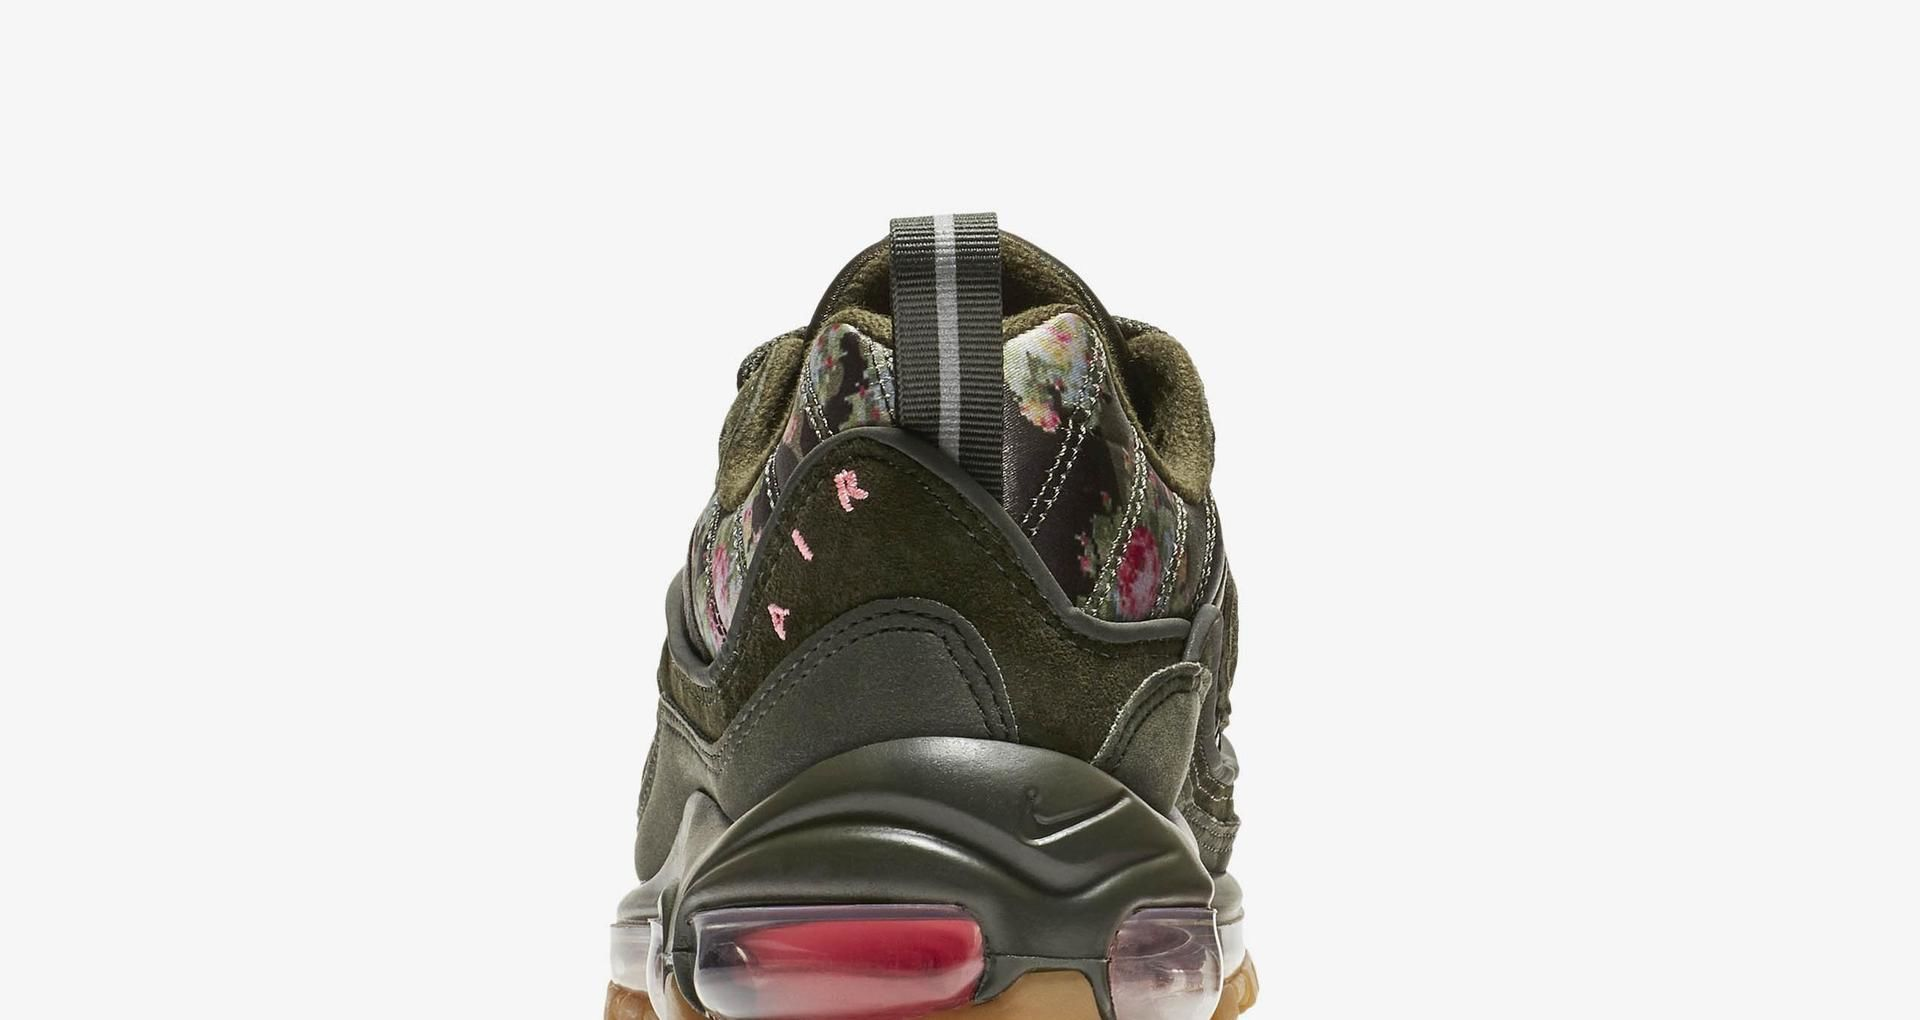 AIR MAX 98 SEQUOIA WOMENS SHOE FLORAL PATTERNPINK